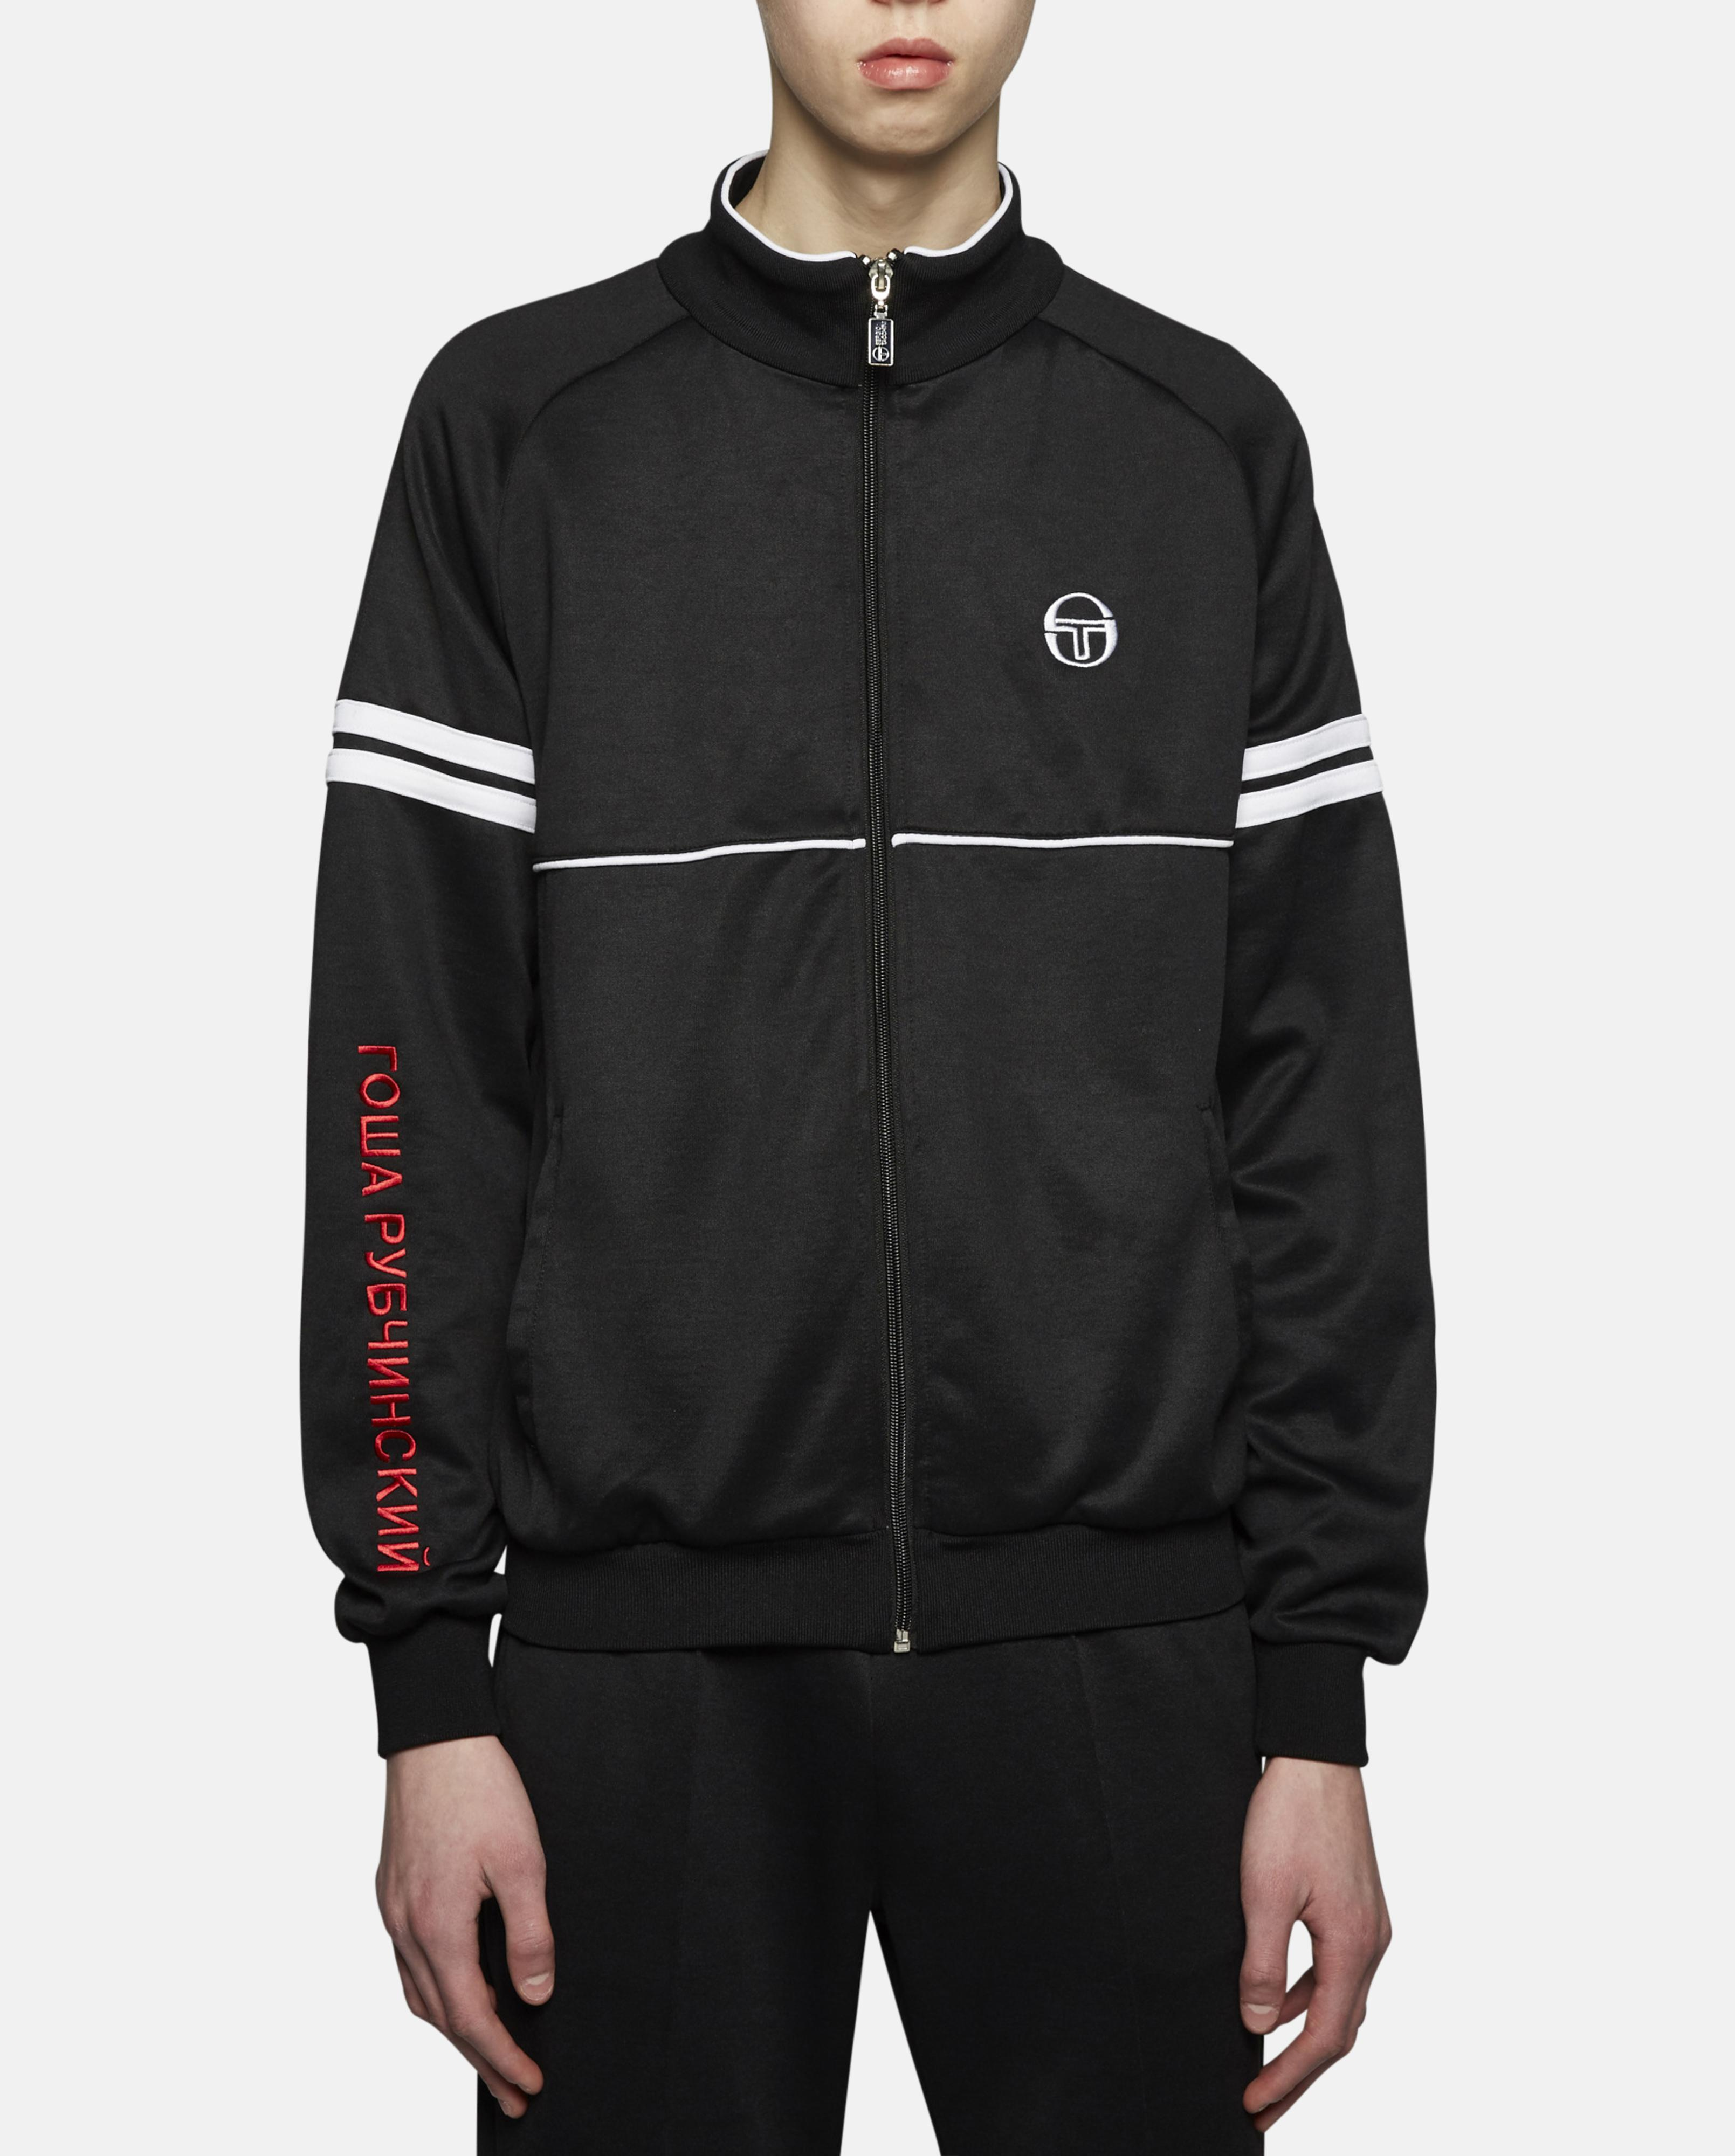 lyst gosha rubchinskiy sergio tacchini track jacket in. Black Bedroom Furniture Sets. Home Design Ideas